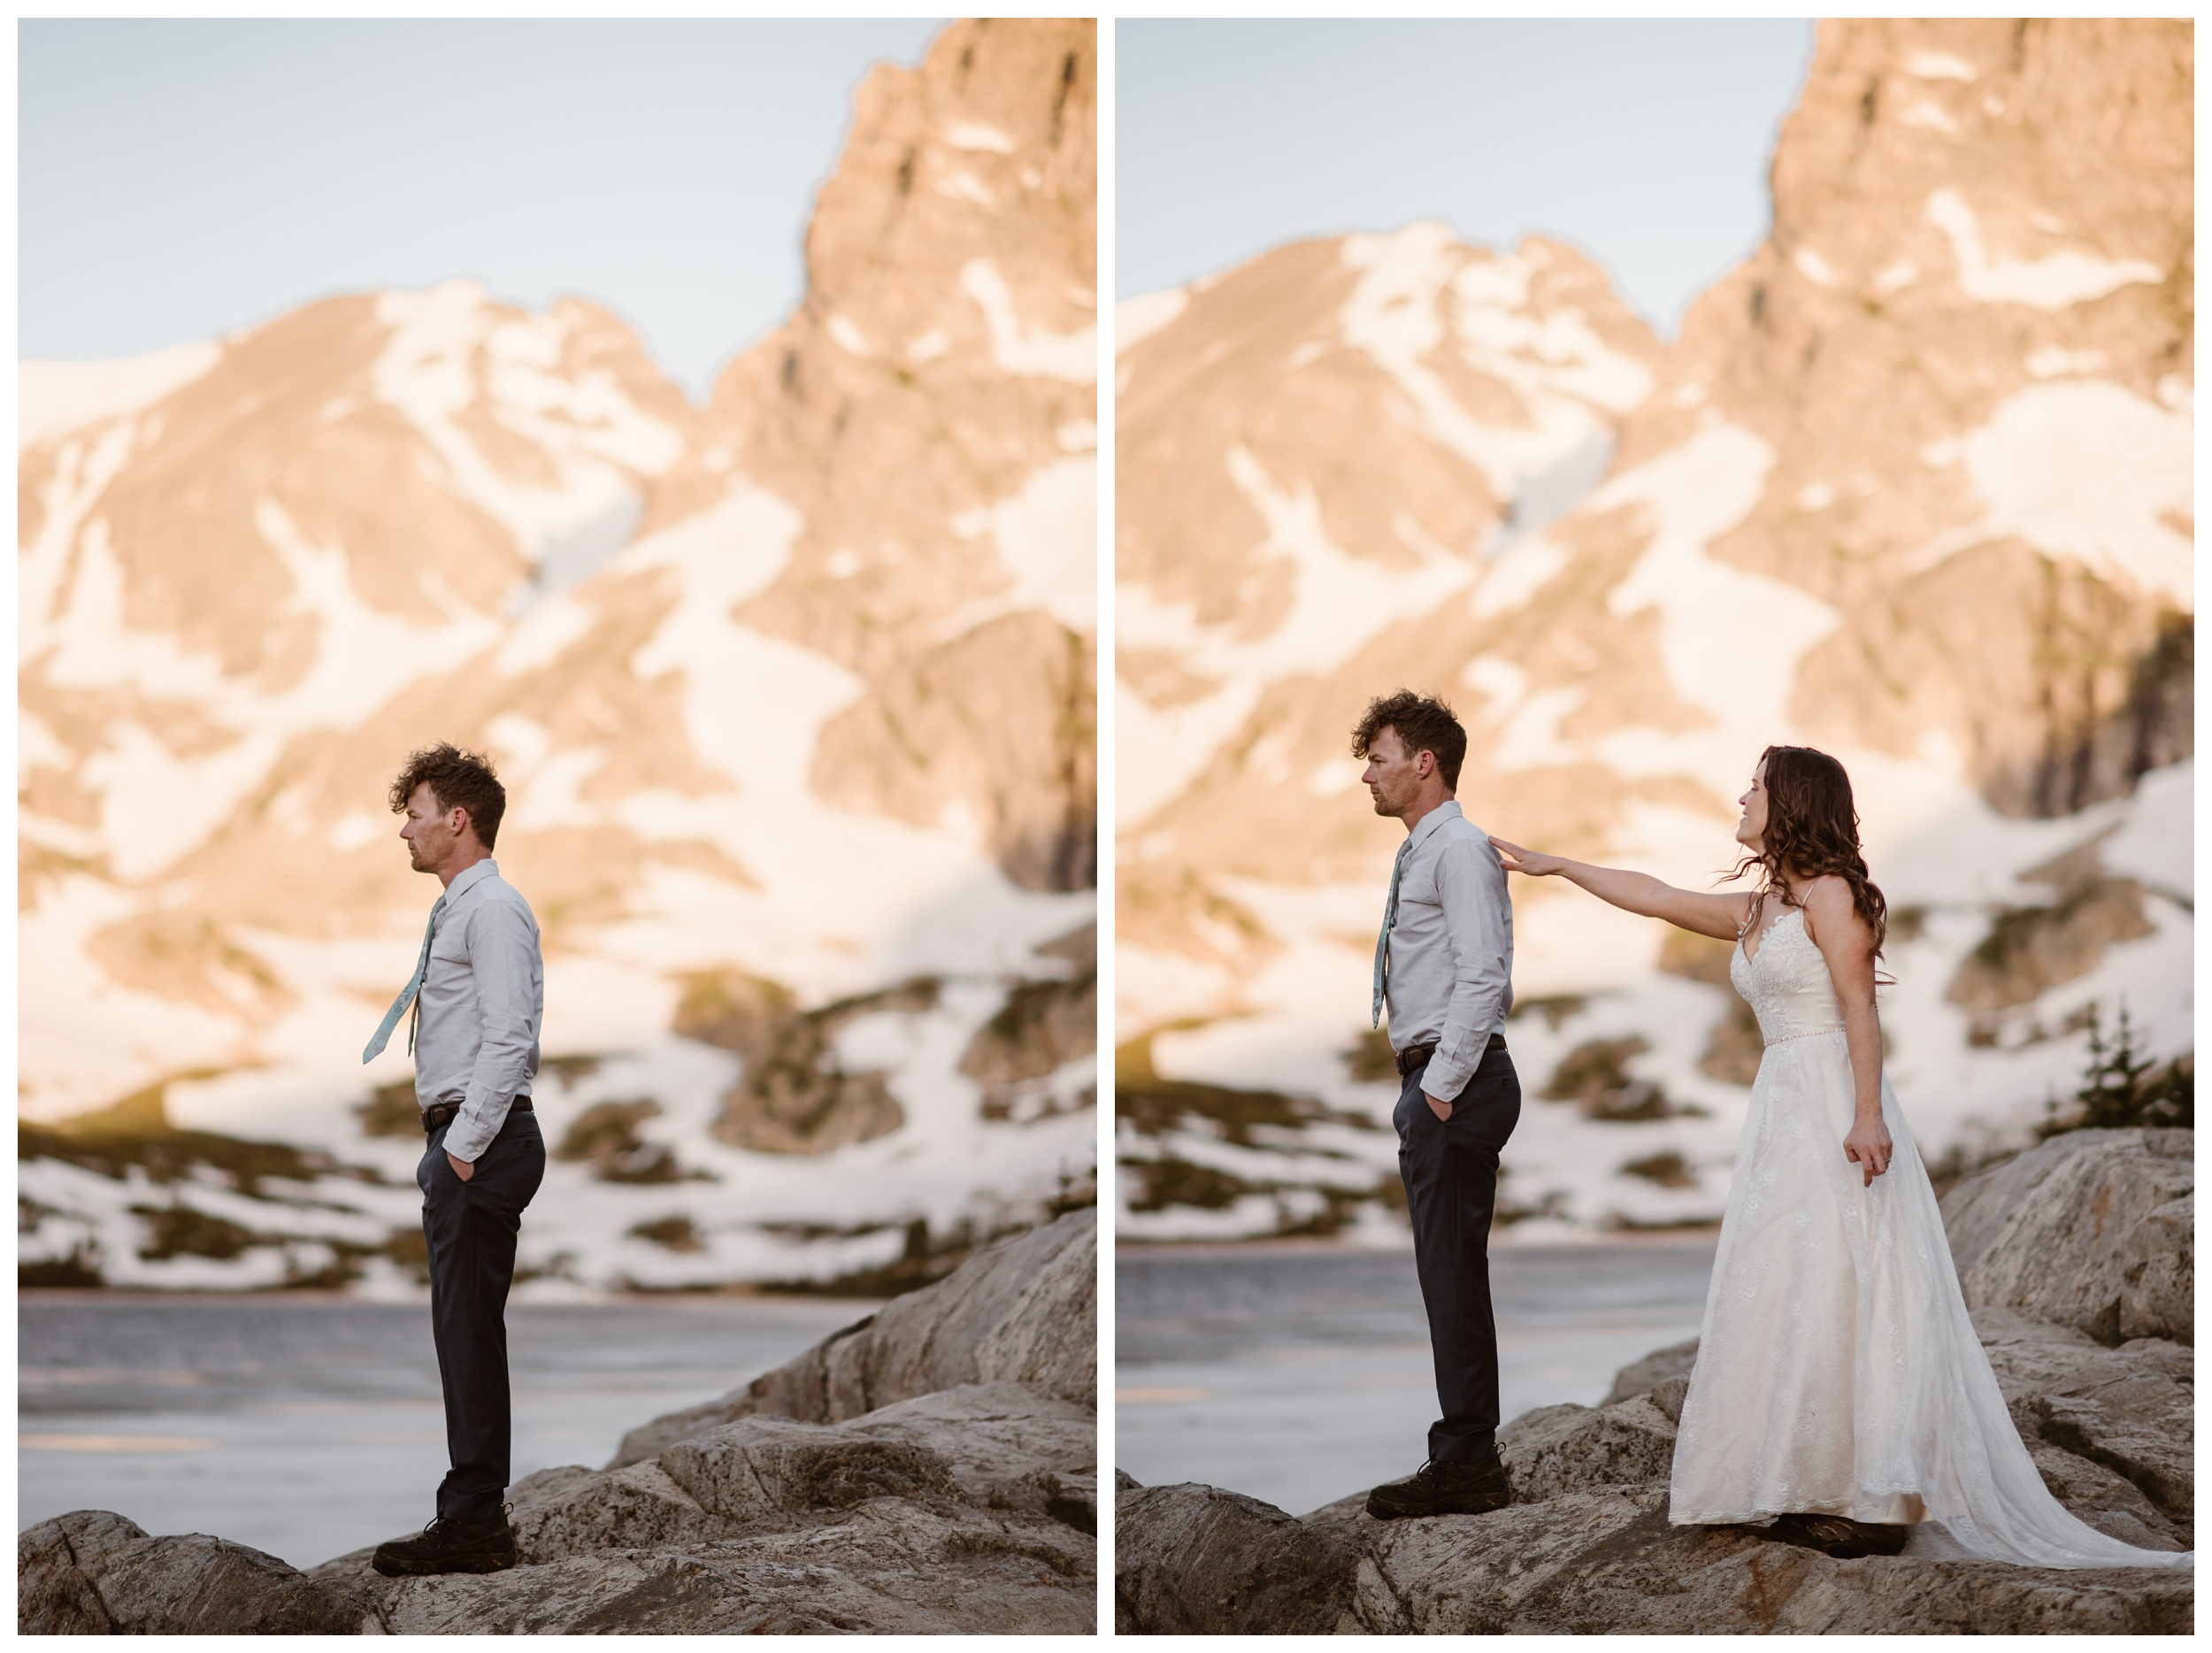 Karen and Matt chose to do their first look for their adventure elopement ceremony with the mountains above Lake Isabelle in Nederland, Colorado behind them, glowing pink with alpenglow. Photo by Adventure Instead, Maddie Mae.